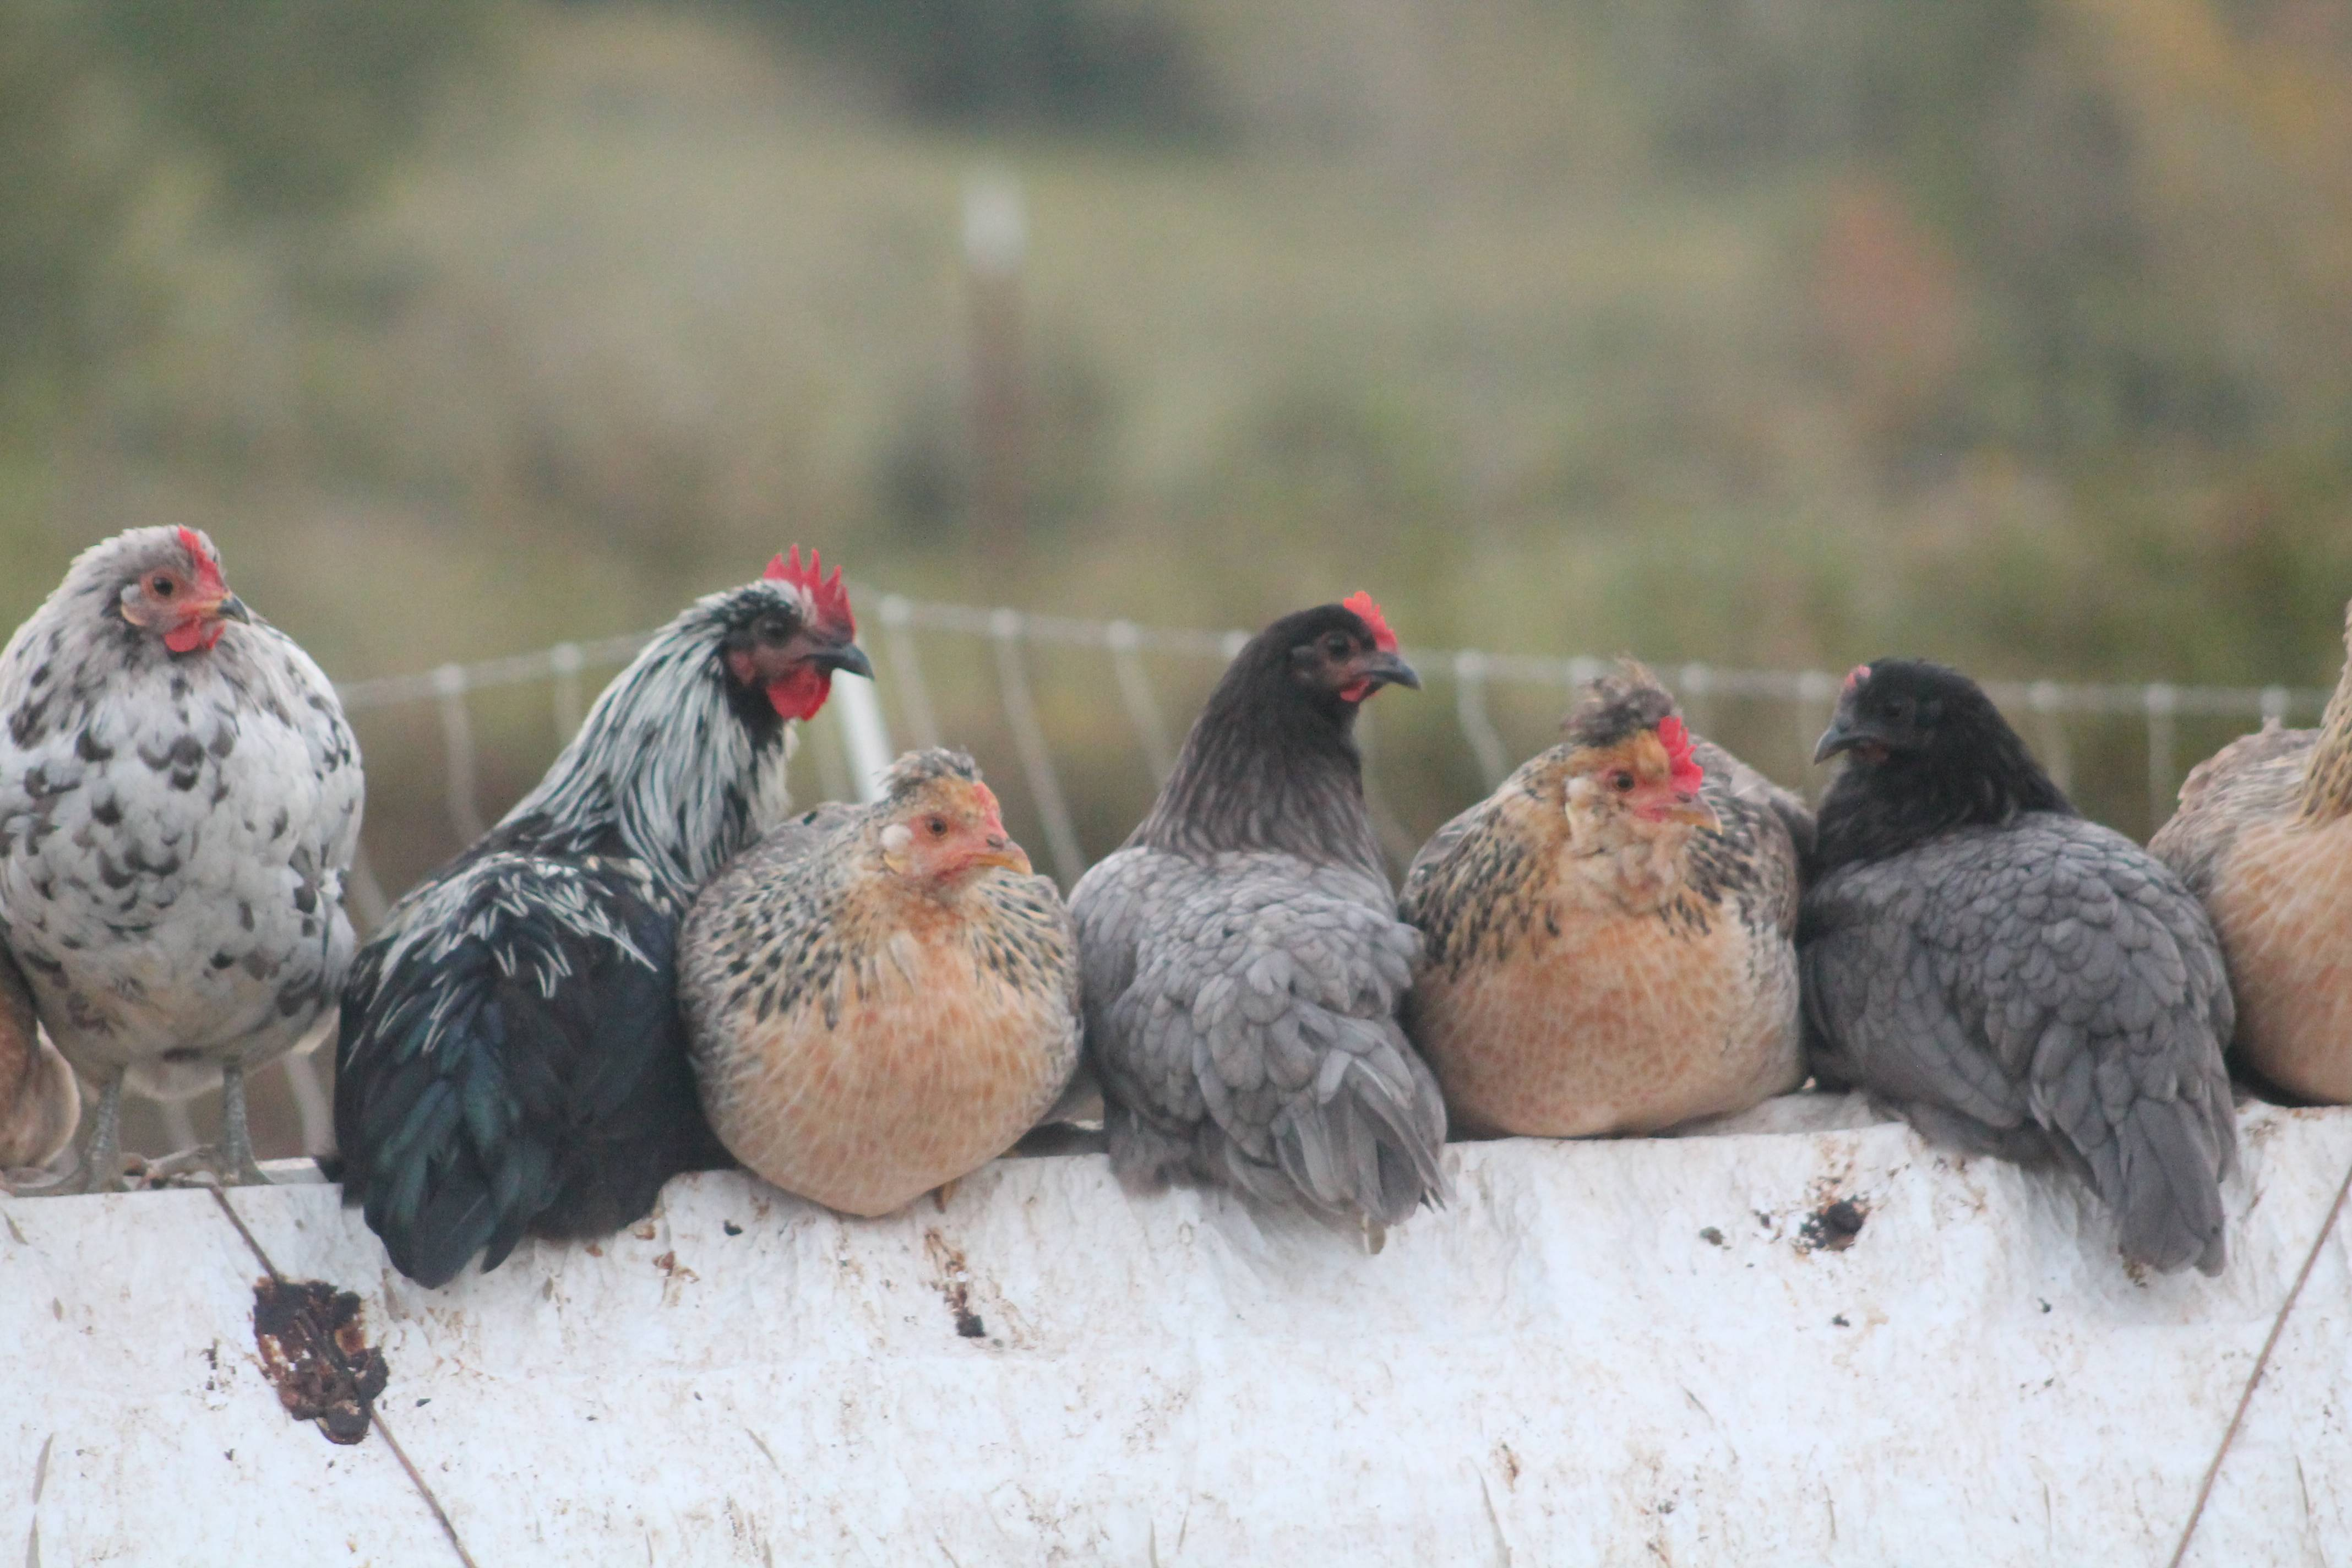 Chickens in a line